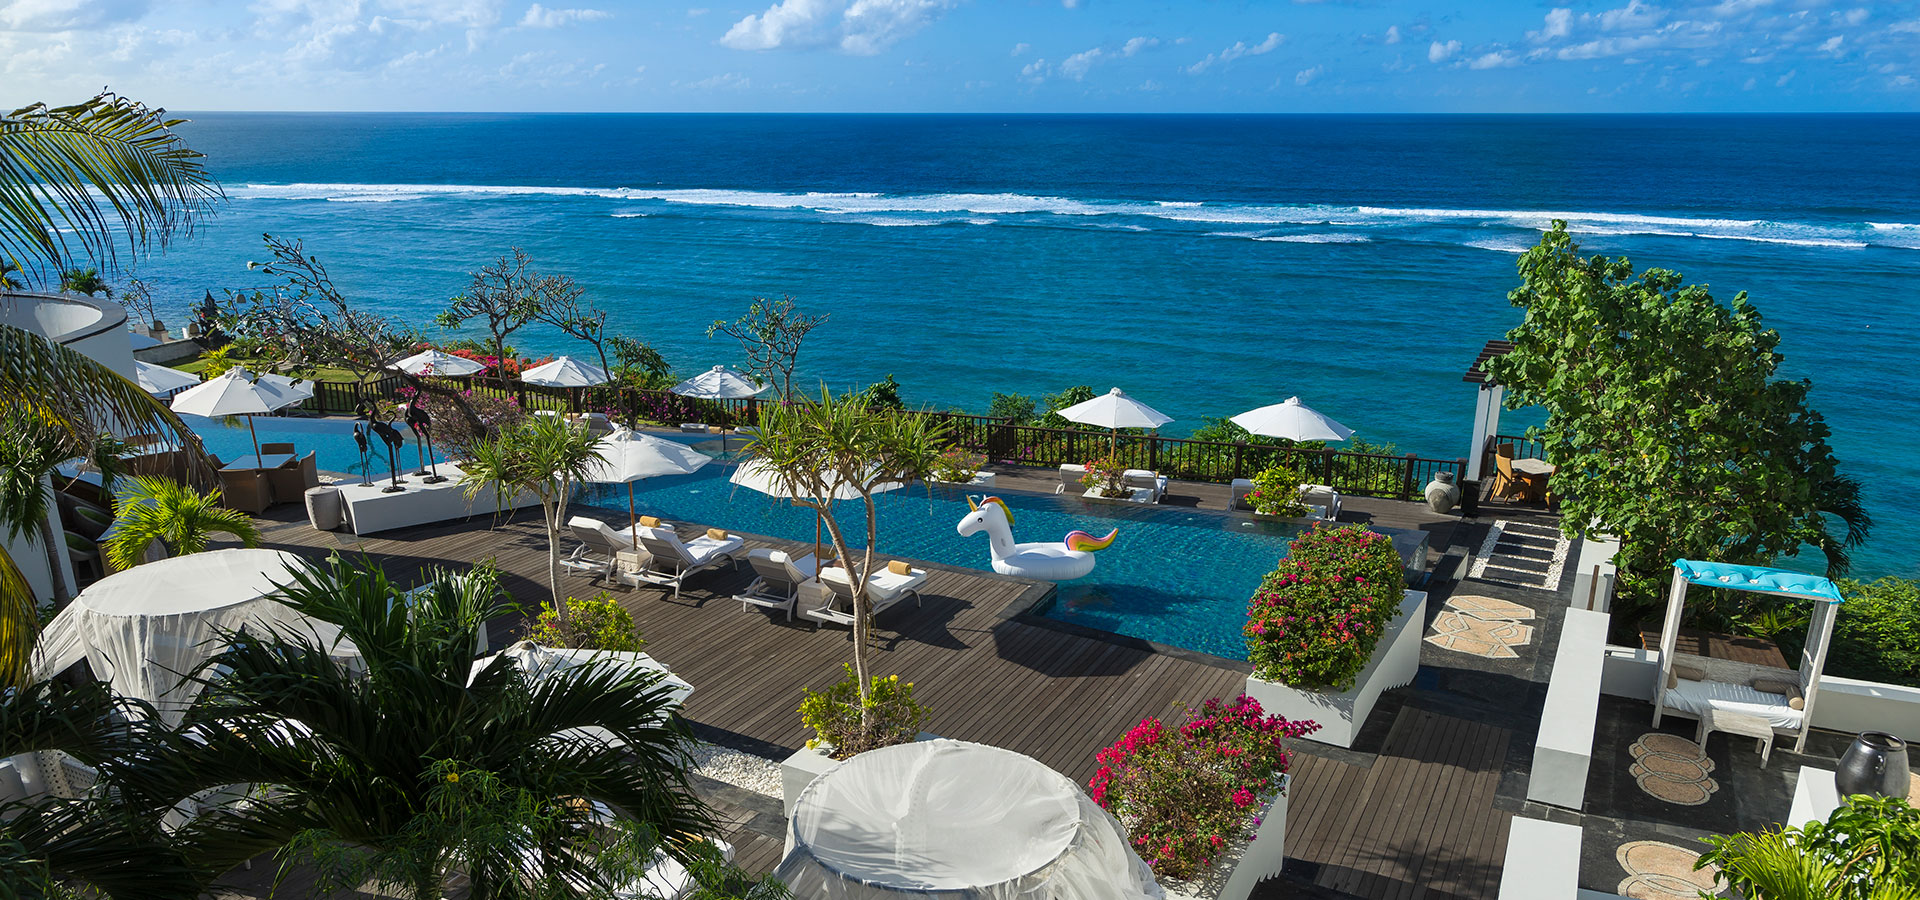 Pool Beach front view at Samabe Bali Suites & Villas